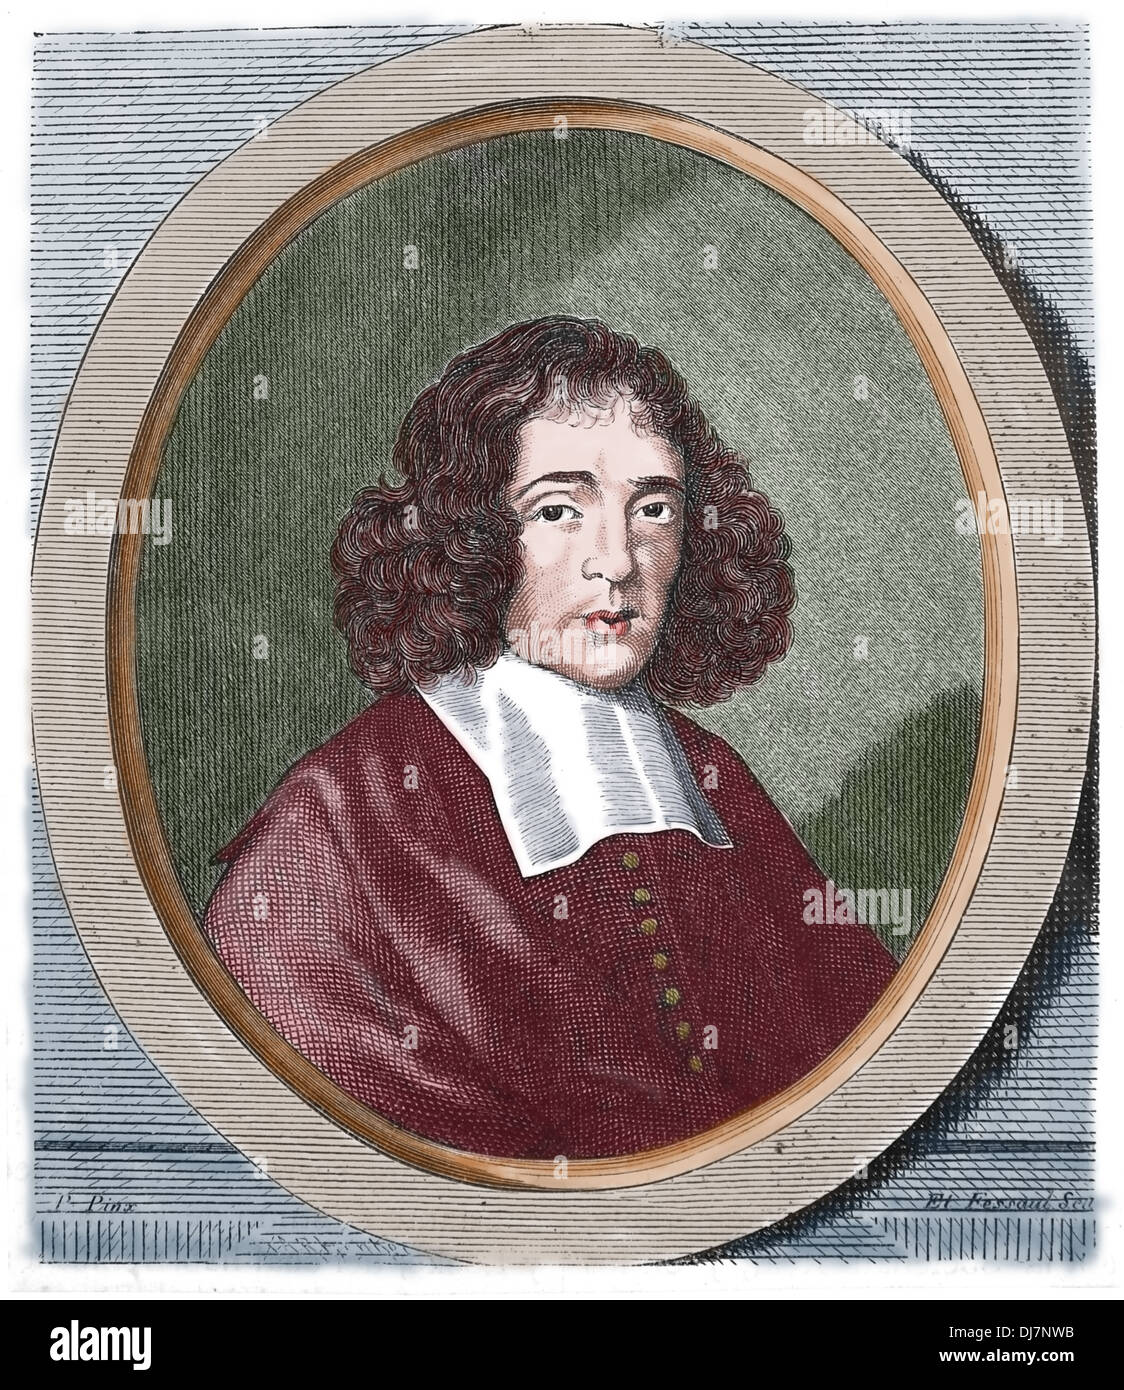 Baruch Spinoza (1632-1677). Dutch philosopher. Engraving by E. Fessard. Copy, 19th century. Stock Photo